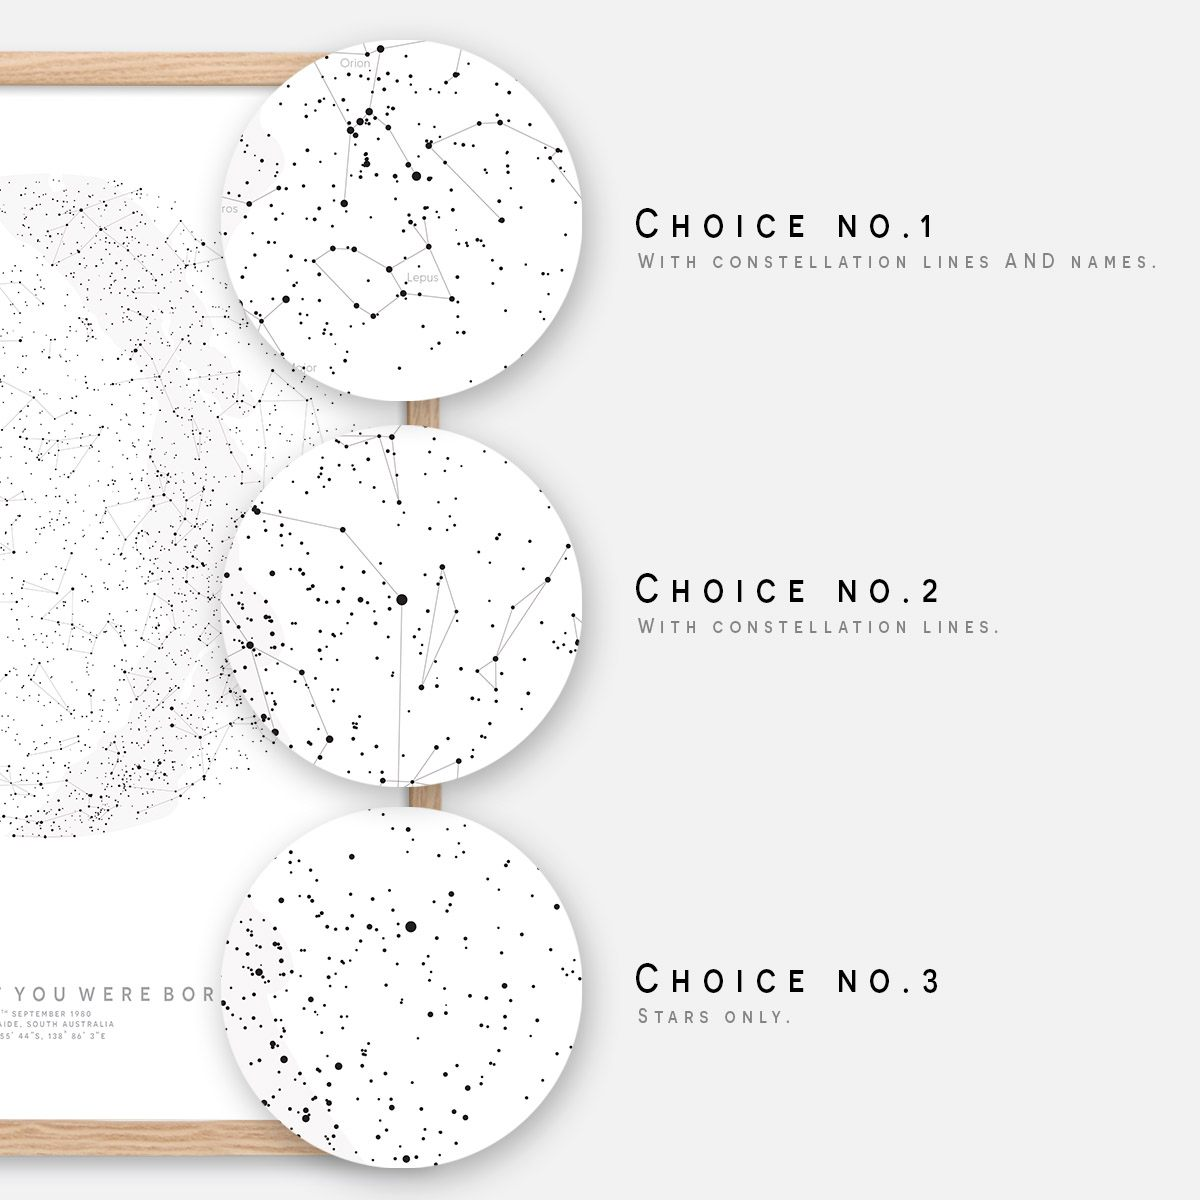 Details about CUSTOM Star Map | Star Chart | Night Sky Map Constellation  Print | Wedding Gift